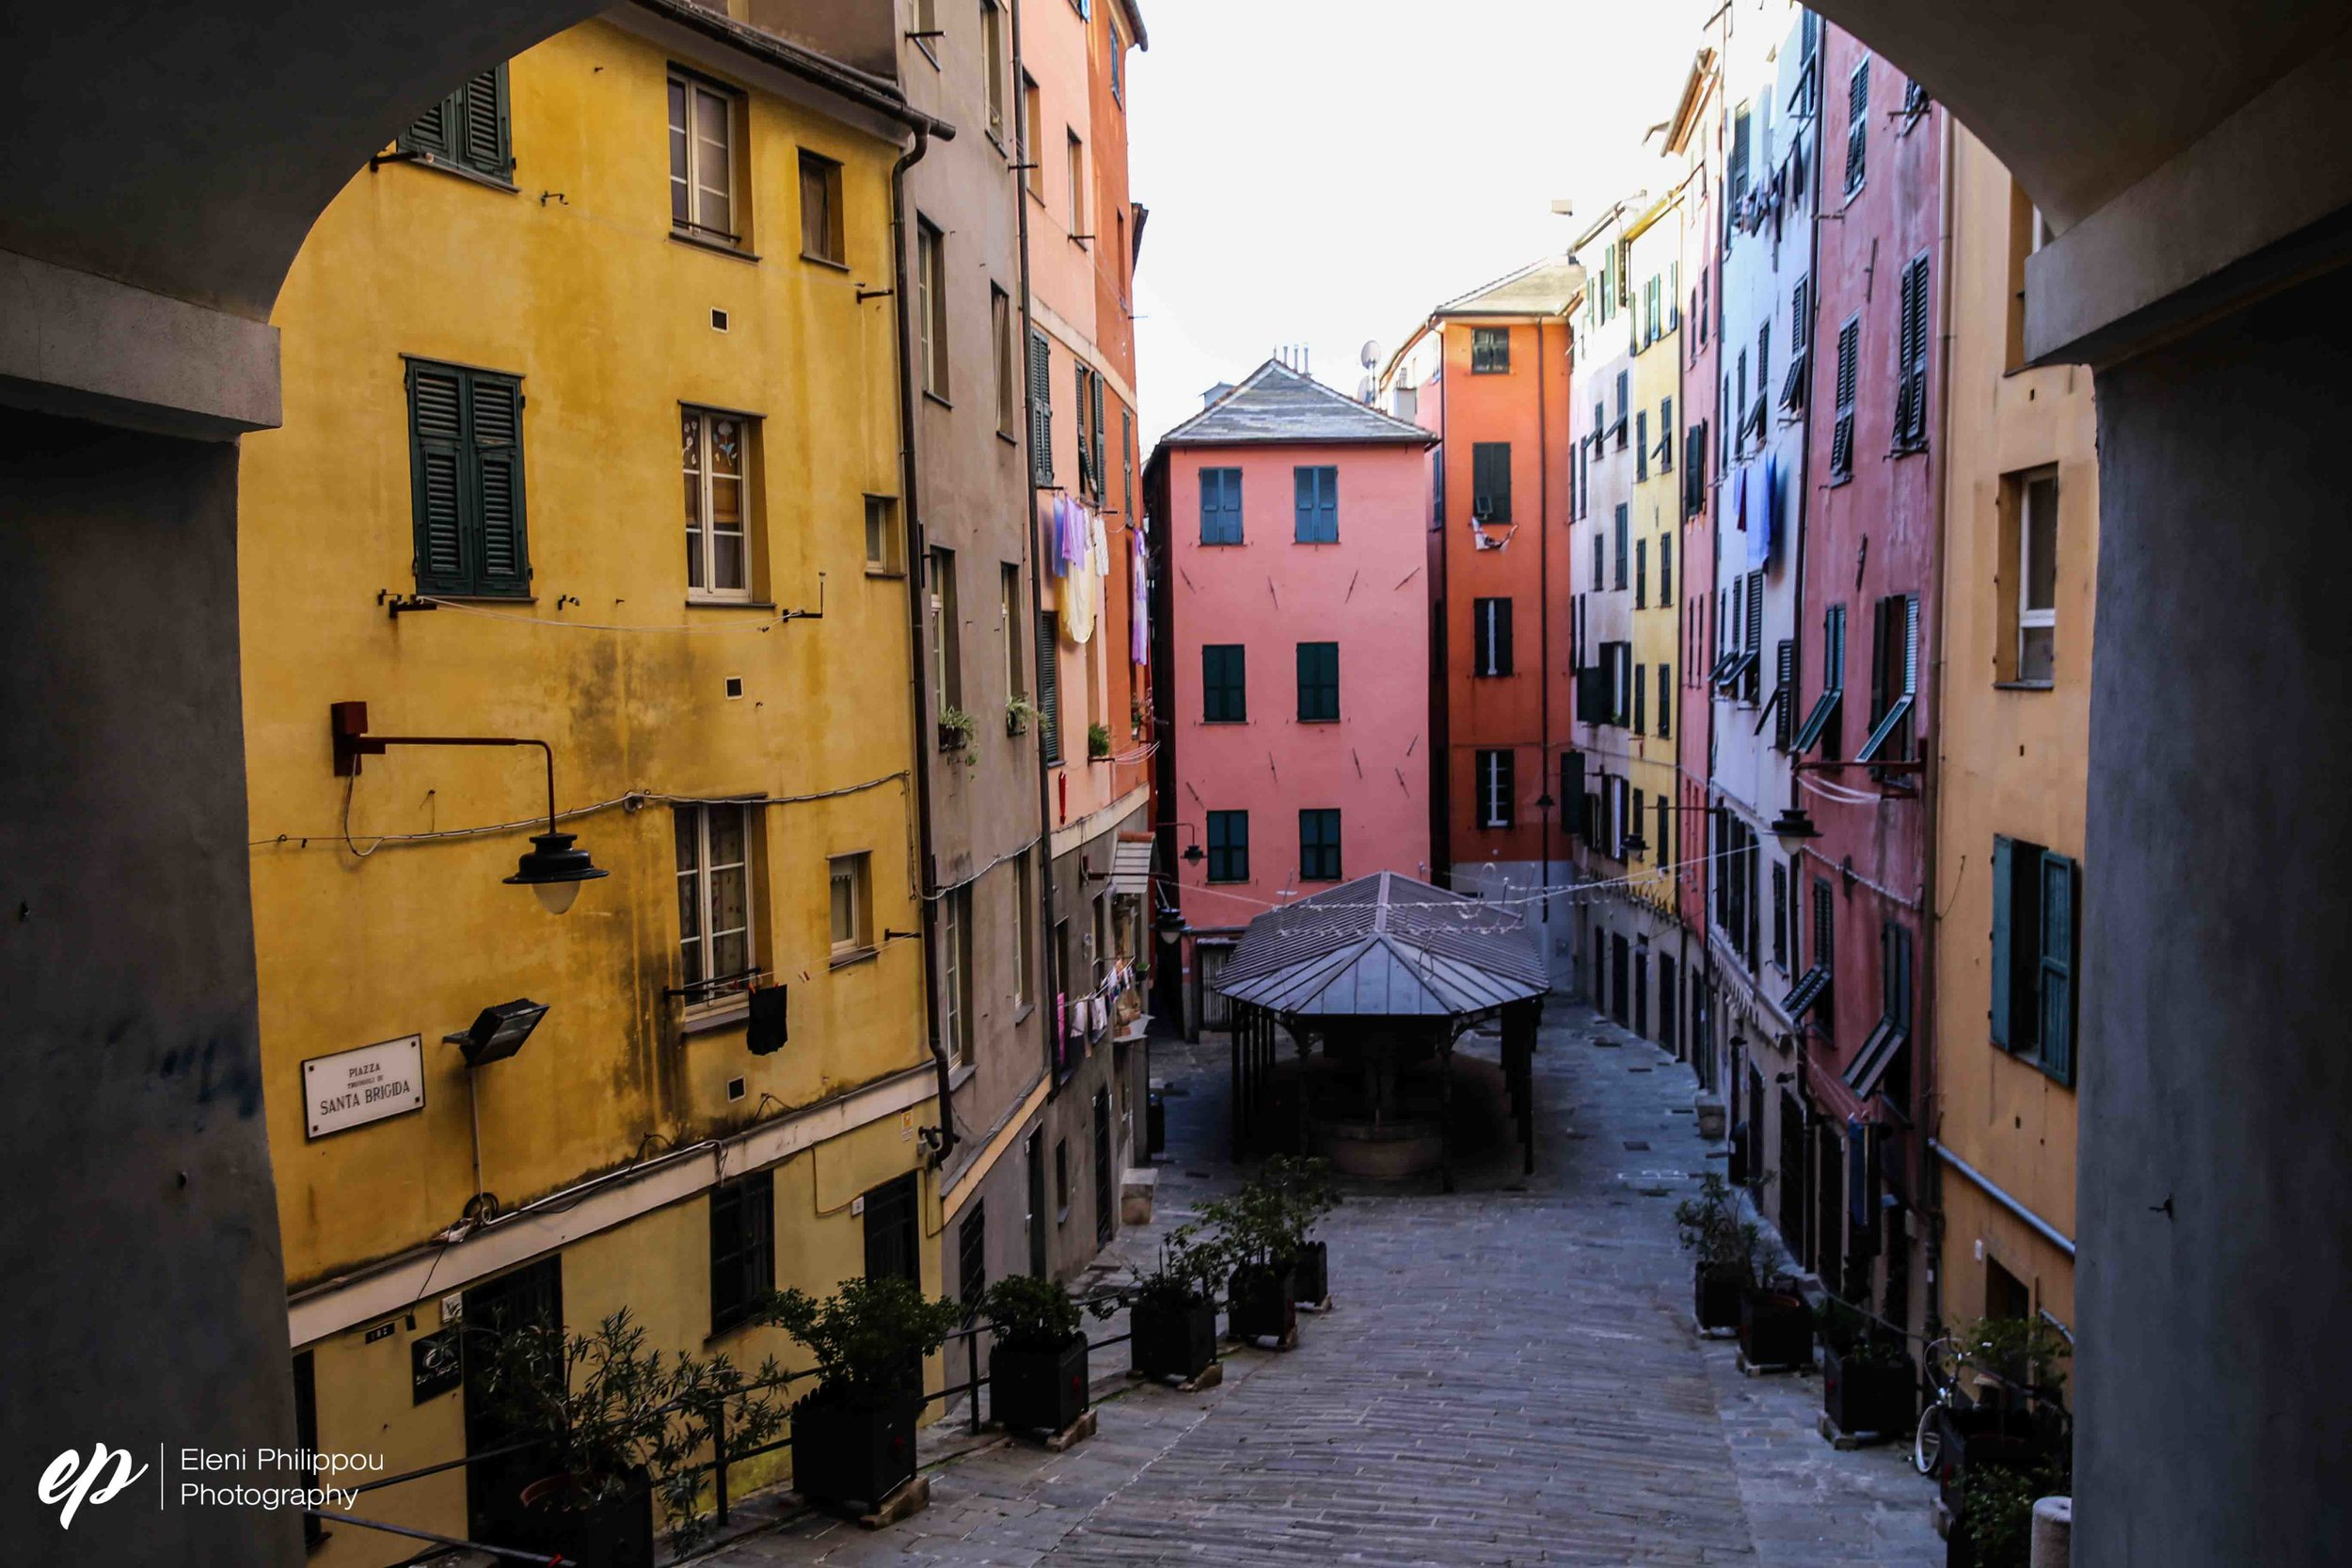 Finding Genova's colourful alleys